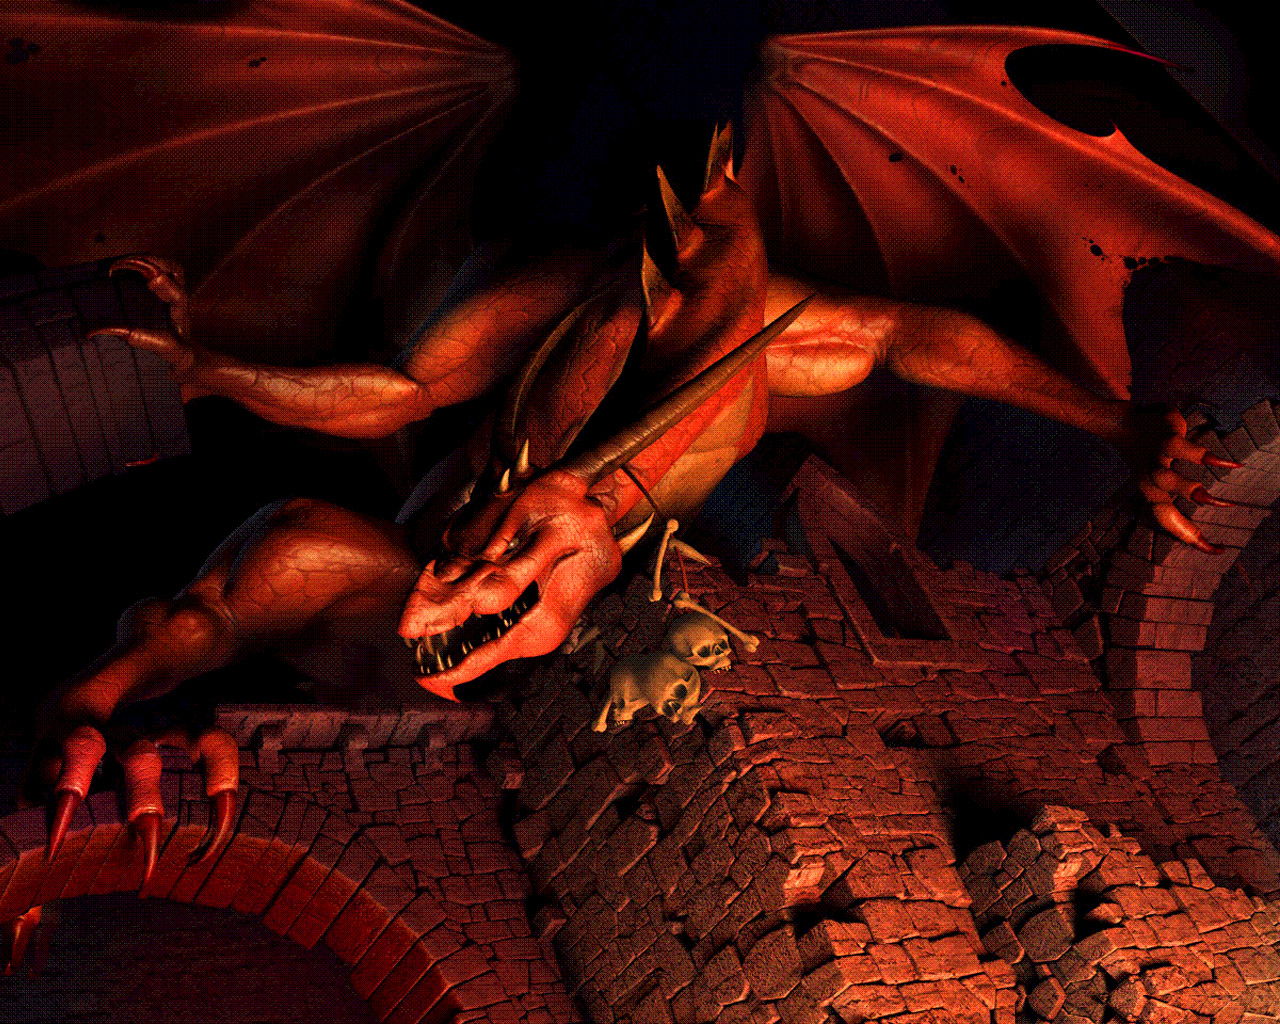 Red Dragon Wallpaper Free HD Backgrounds Images Pictures